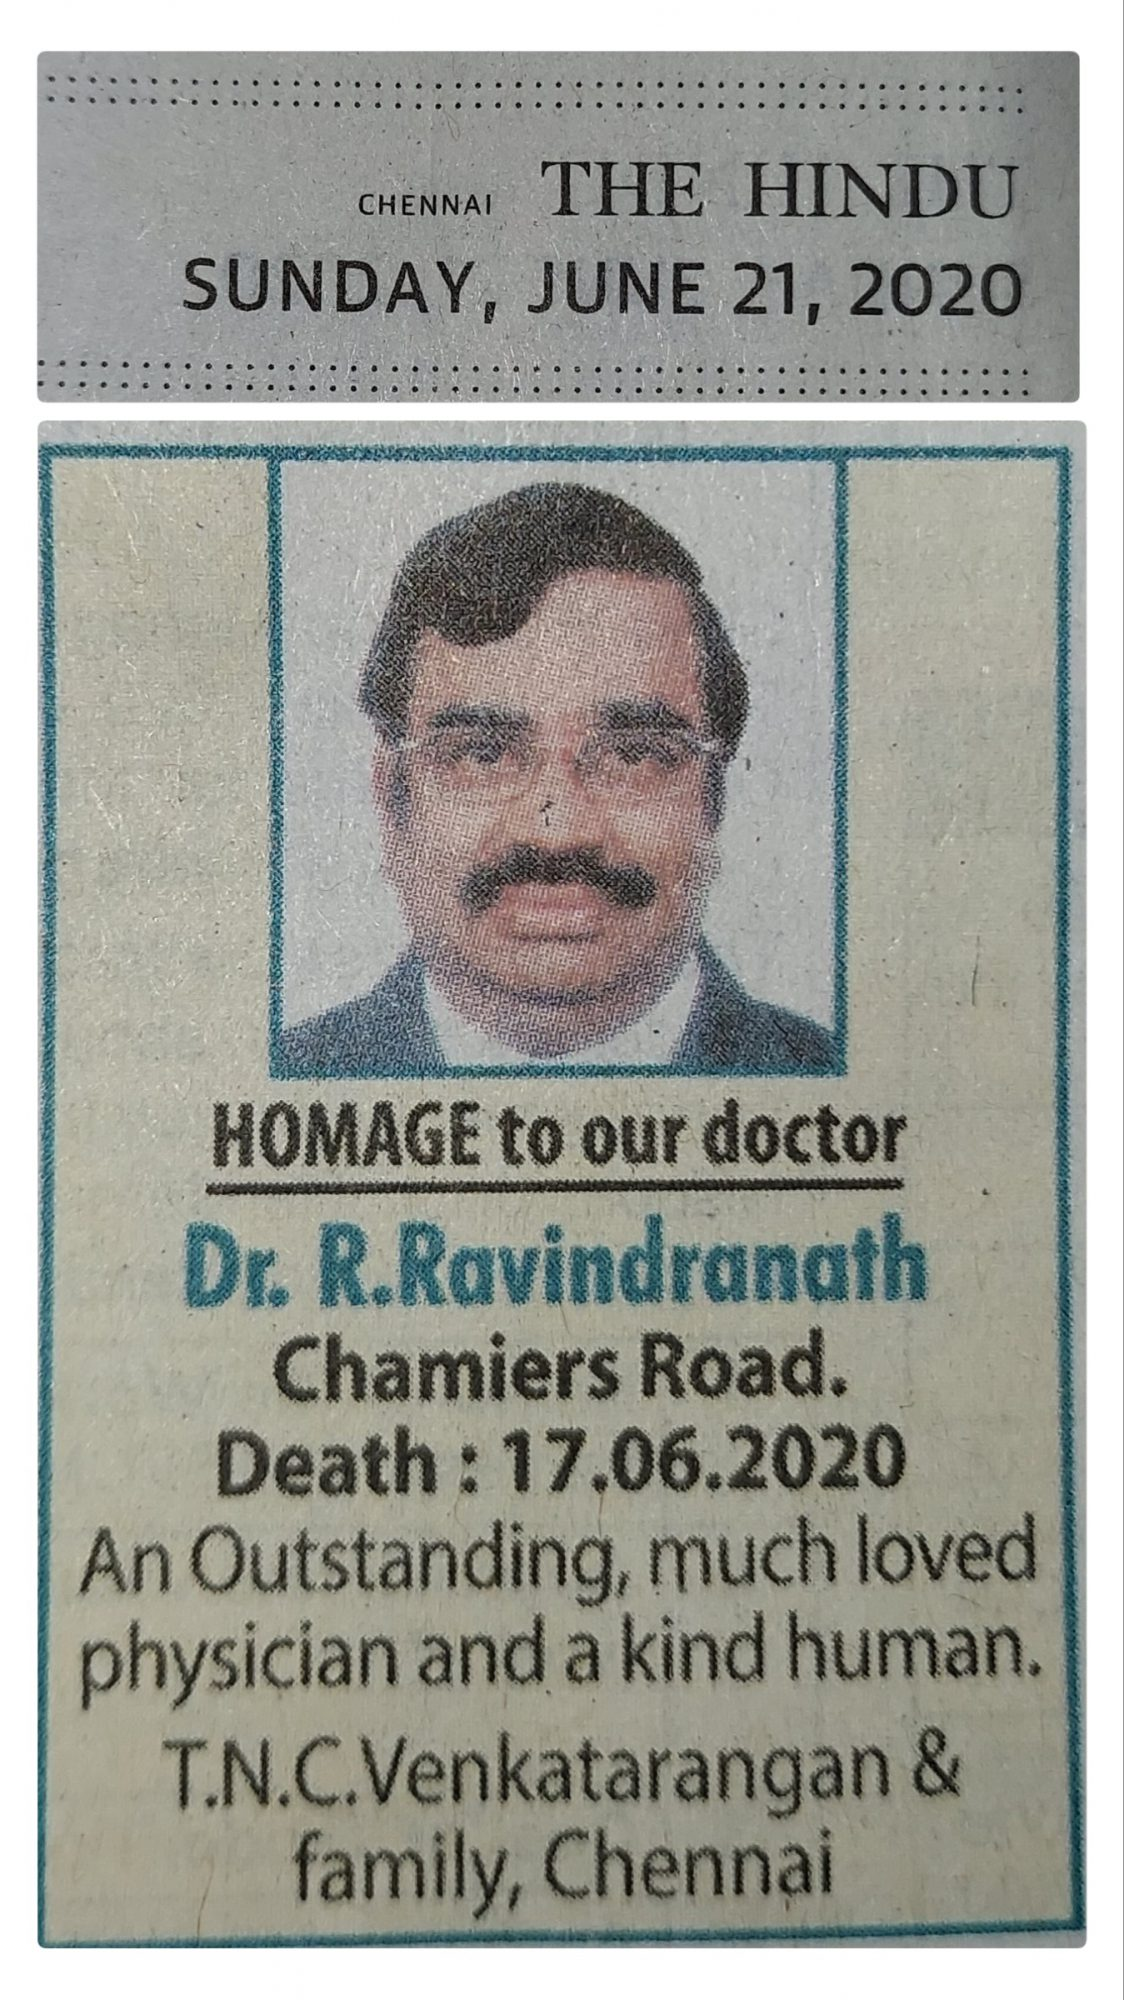 Homage to our doctor - Appeared on The Hindu Newspaper on 21st June 2020.